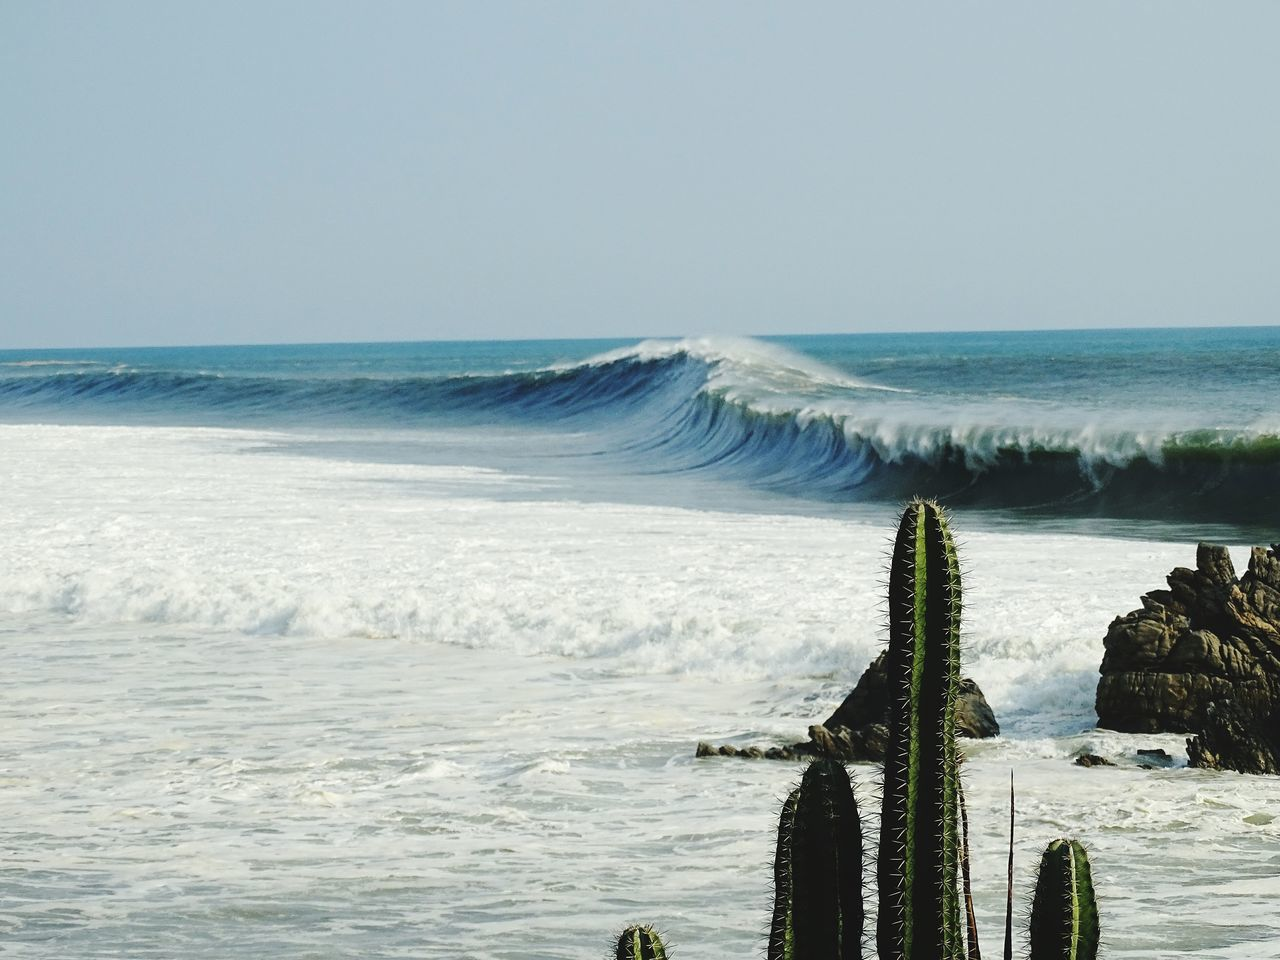 View of breaking wave